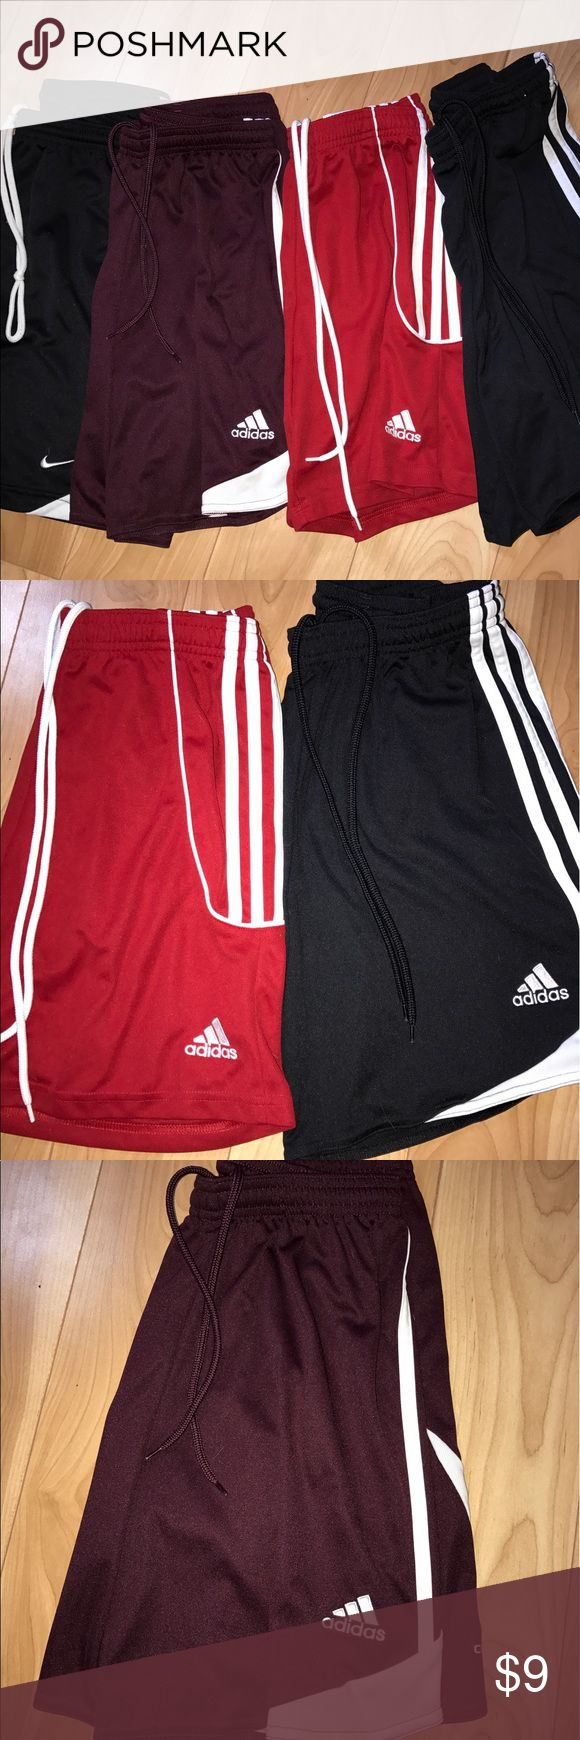 Various Adidas & Nike Soccer Shorts Women's Various pairs of women's soccer shorts, left (black) is Nike, other three are Adidas. Each was originally $25, and I'm selling all four for $29. Comment for individual listing. All size S. Adidas Shorts